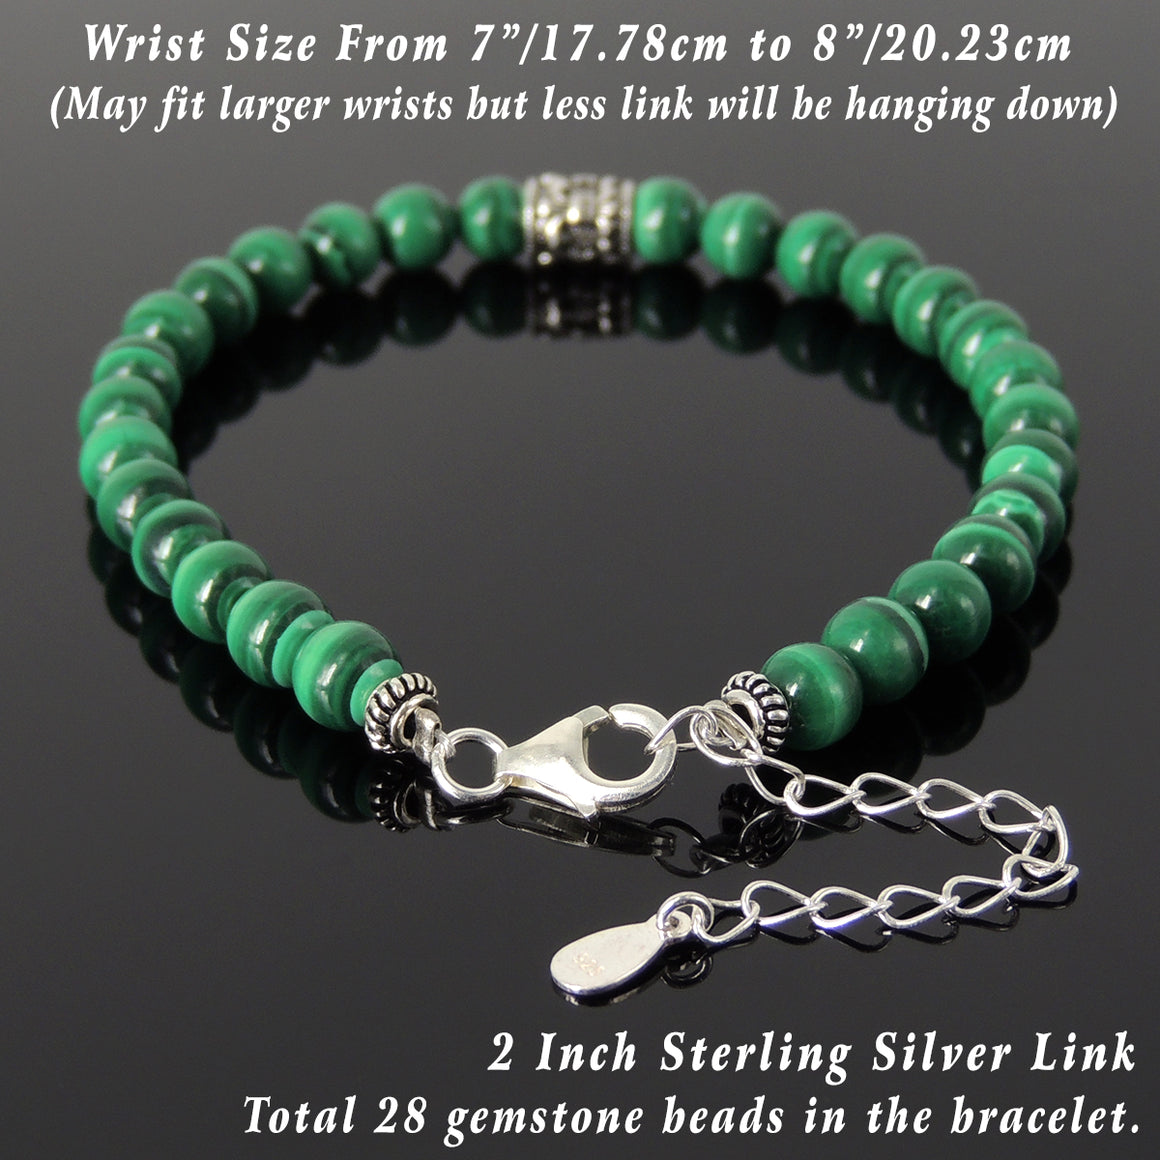 6mm Malachite Healing Gemstone Bracelet with S925 Sterling Silver Fleur de Lis Barrel Bead & Clasp - Handmade by Gem & Silver BR1286